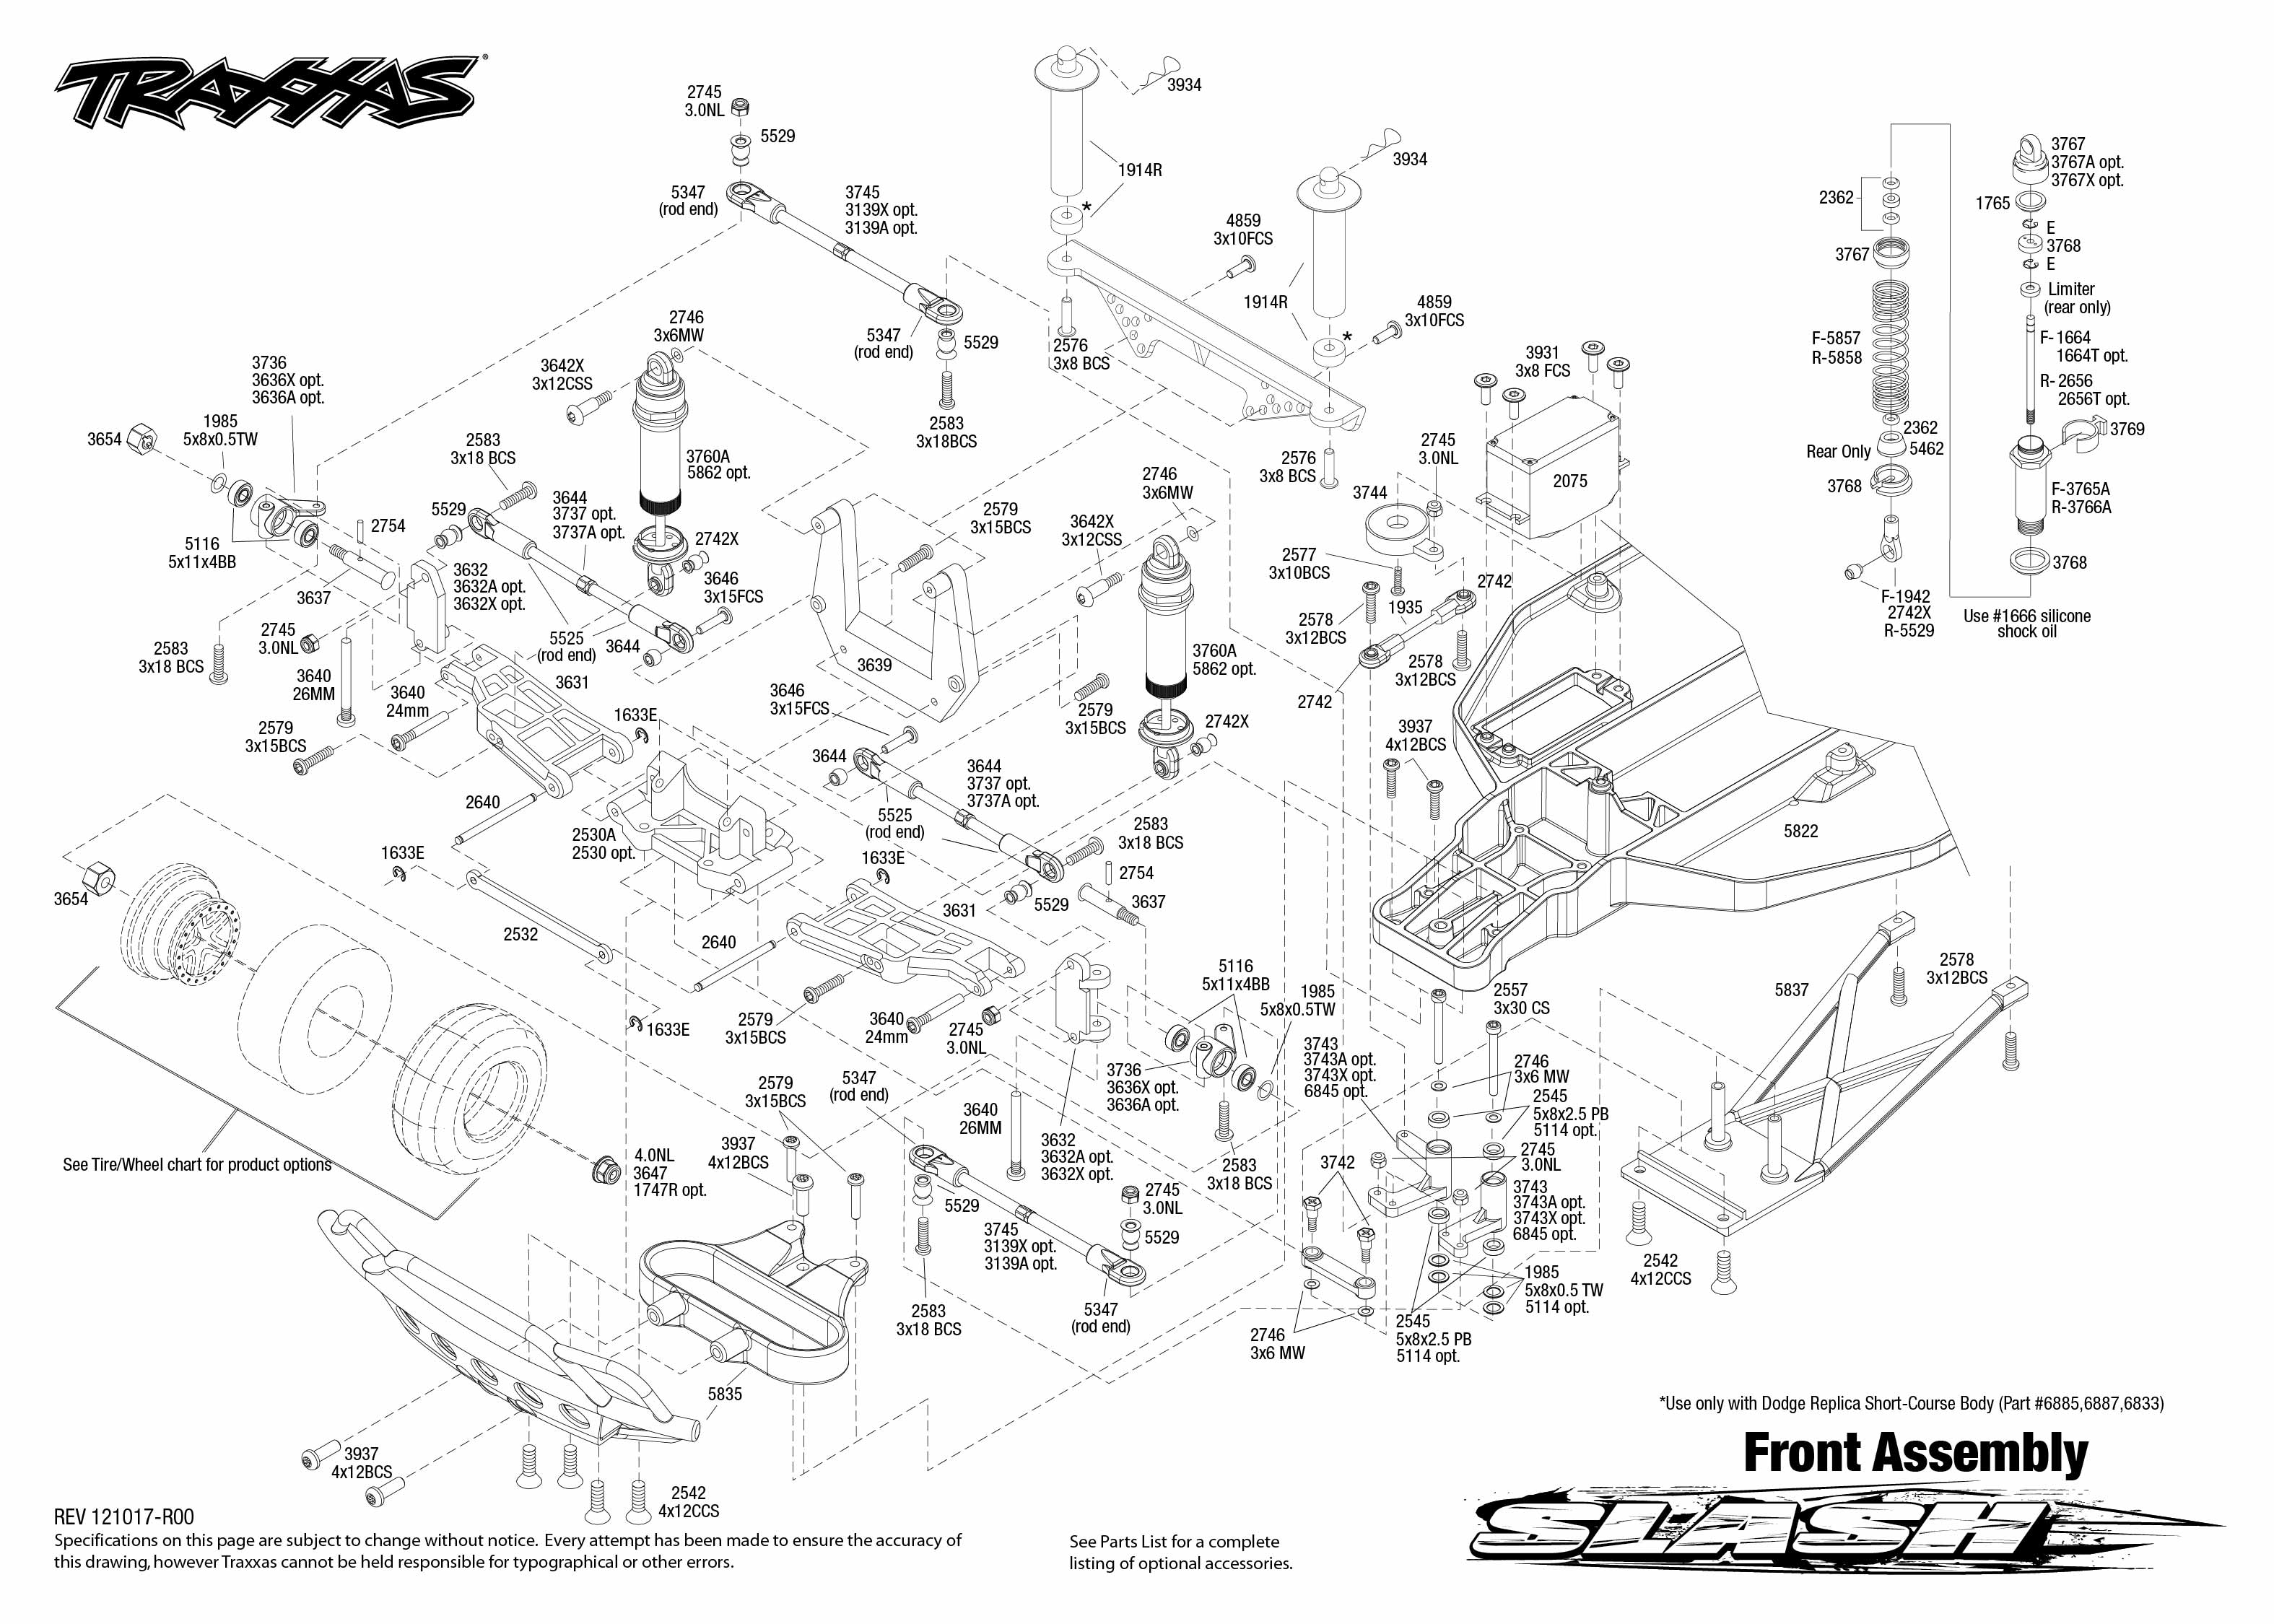 58034_exploded views_TQi_121017_58034_Front_Assembly1 traxxas 1 10 scale slash pro 2wd short course race truck 58034 Exploding Diagram Add-On at gsmx.co